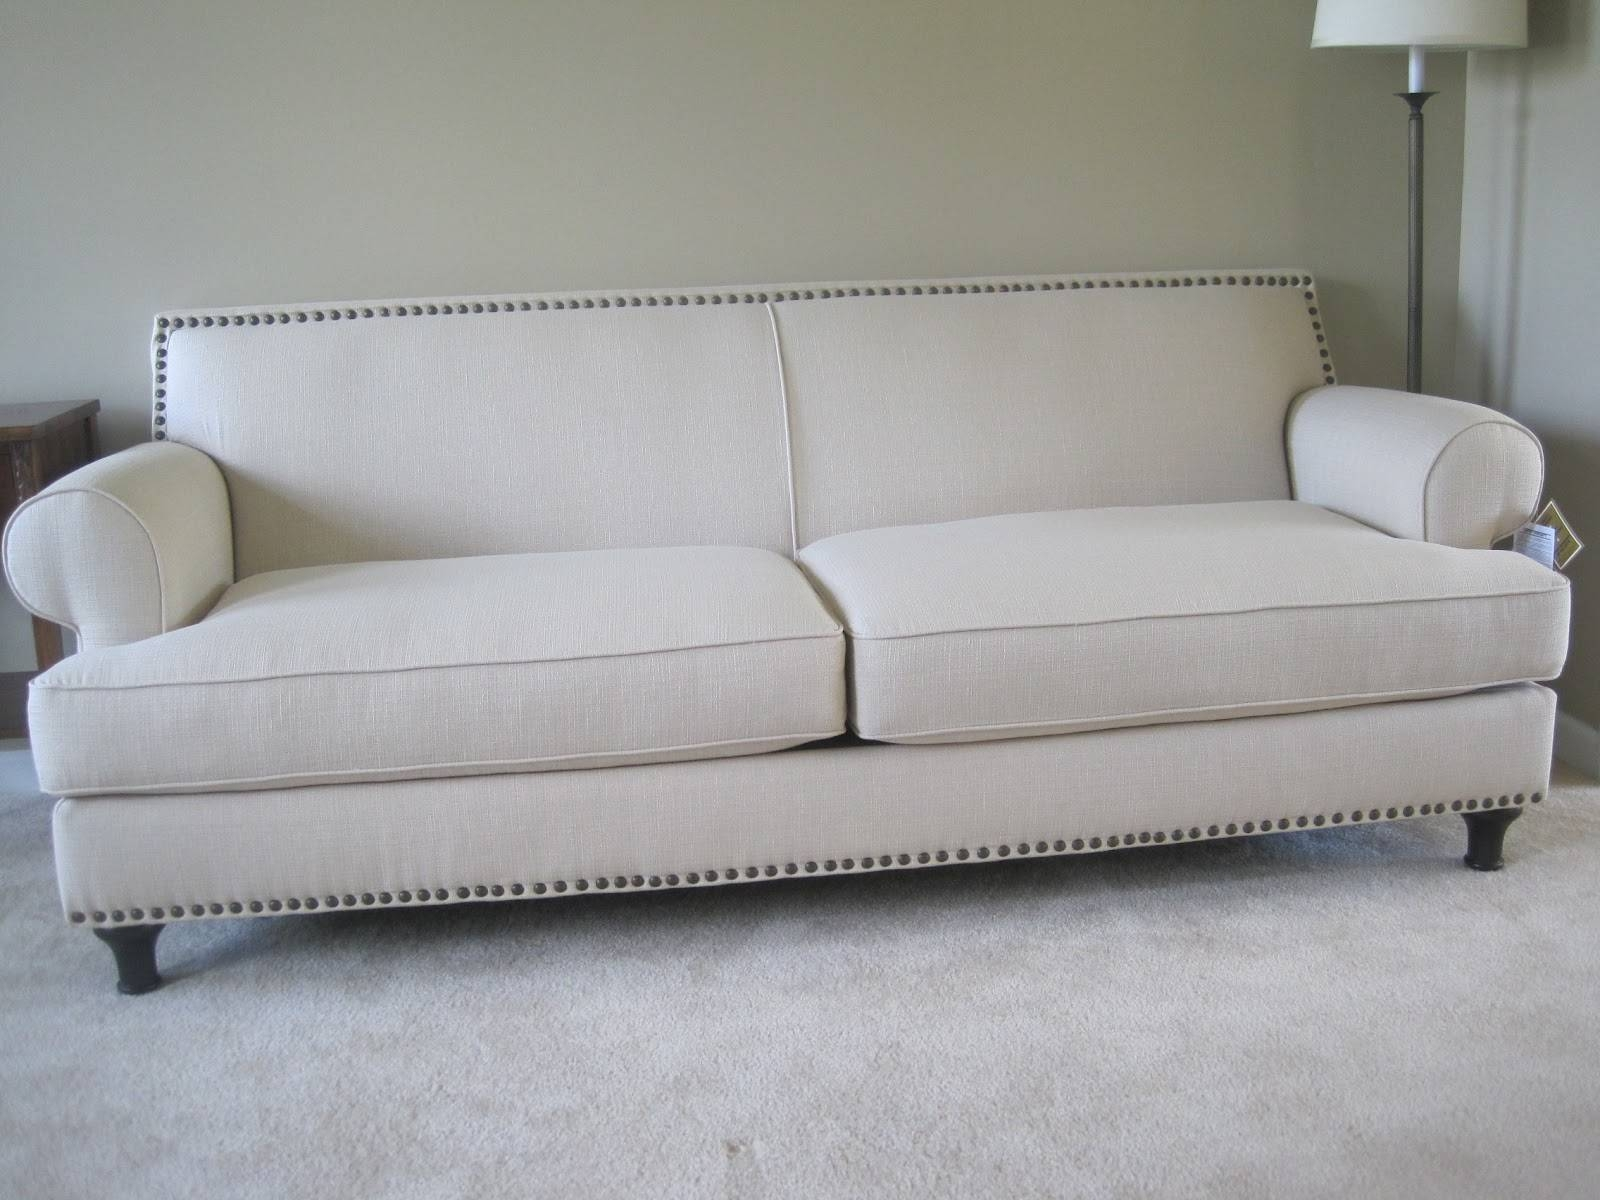 Designed To Dwell: So Fa-Ortunate! throughout Pier 1 Sofas (Image 9 of 15)